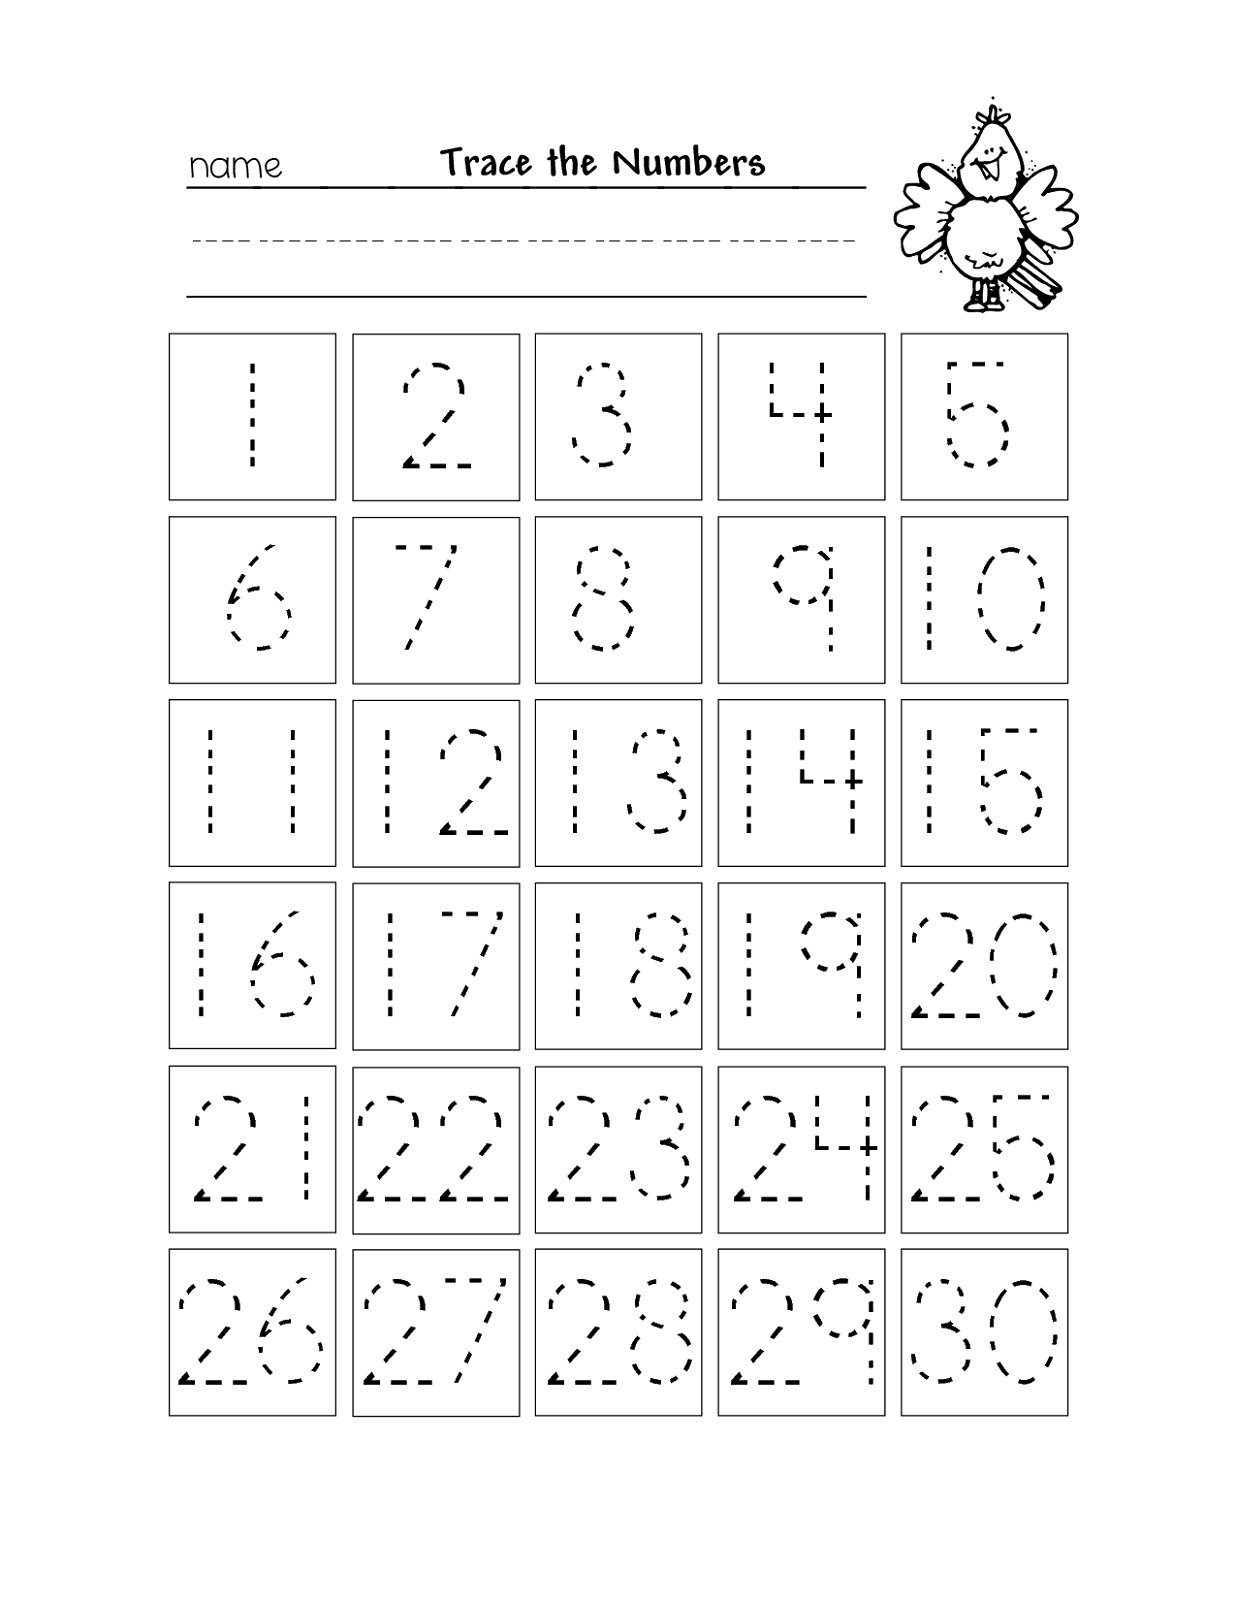 Learning Colors And Shapes further Sight Word Worksheet Spring besides Numbers Worksheet Tracing further Original furthermore Worksheets For Kg Kids Free Pre K Kindergarten Coloring Pages X. on this prek kinder math cut free kindergarten worksheets and